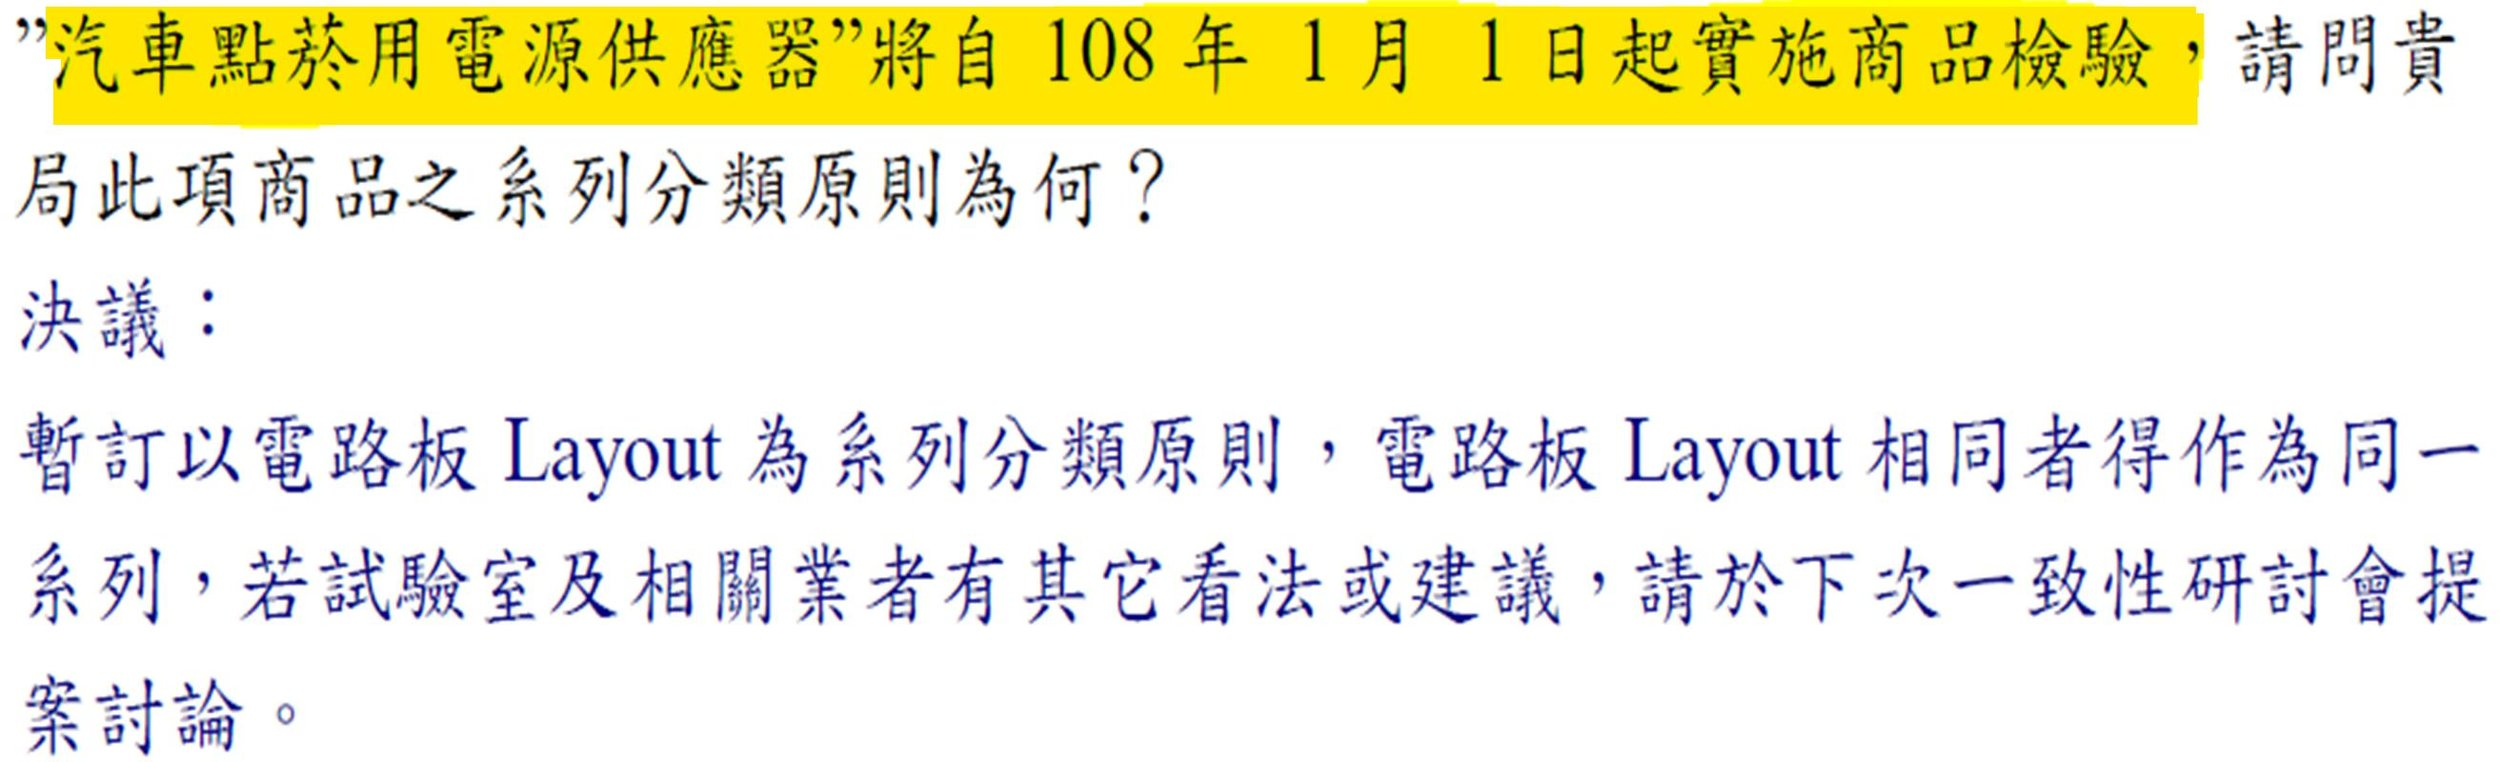 https://www.bsmi.gov.tw/wSite/public/Attachment/f1547171106258.pdf    (出處為經濟部標準檢驗局107年5月公告 )